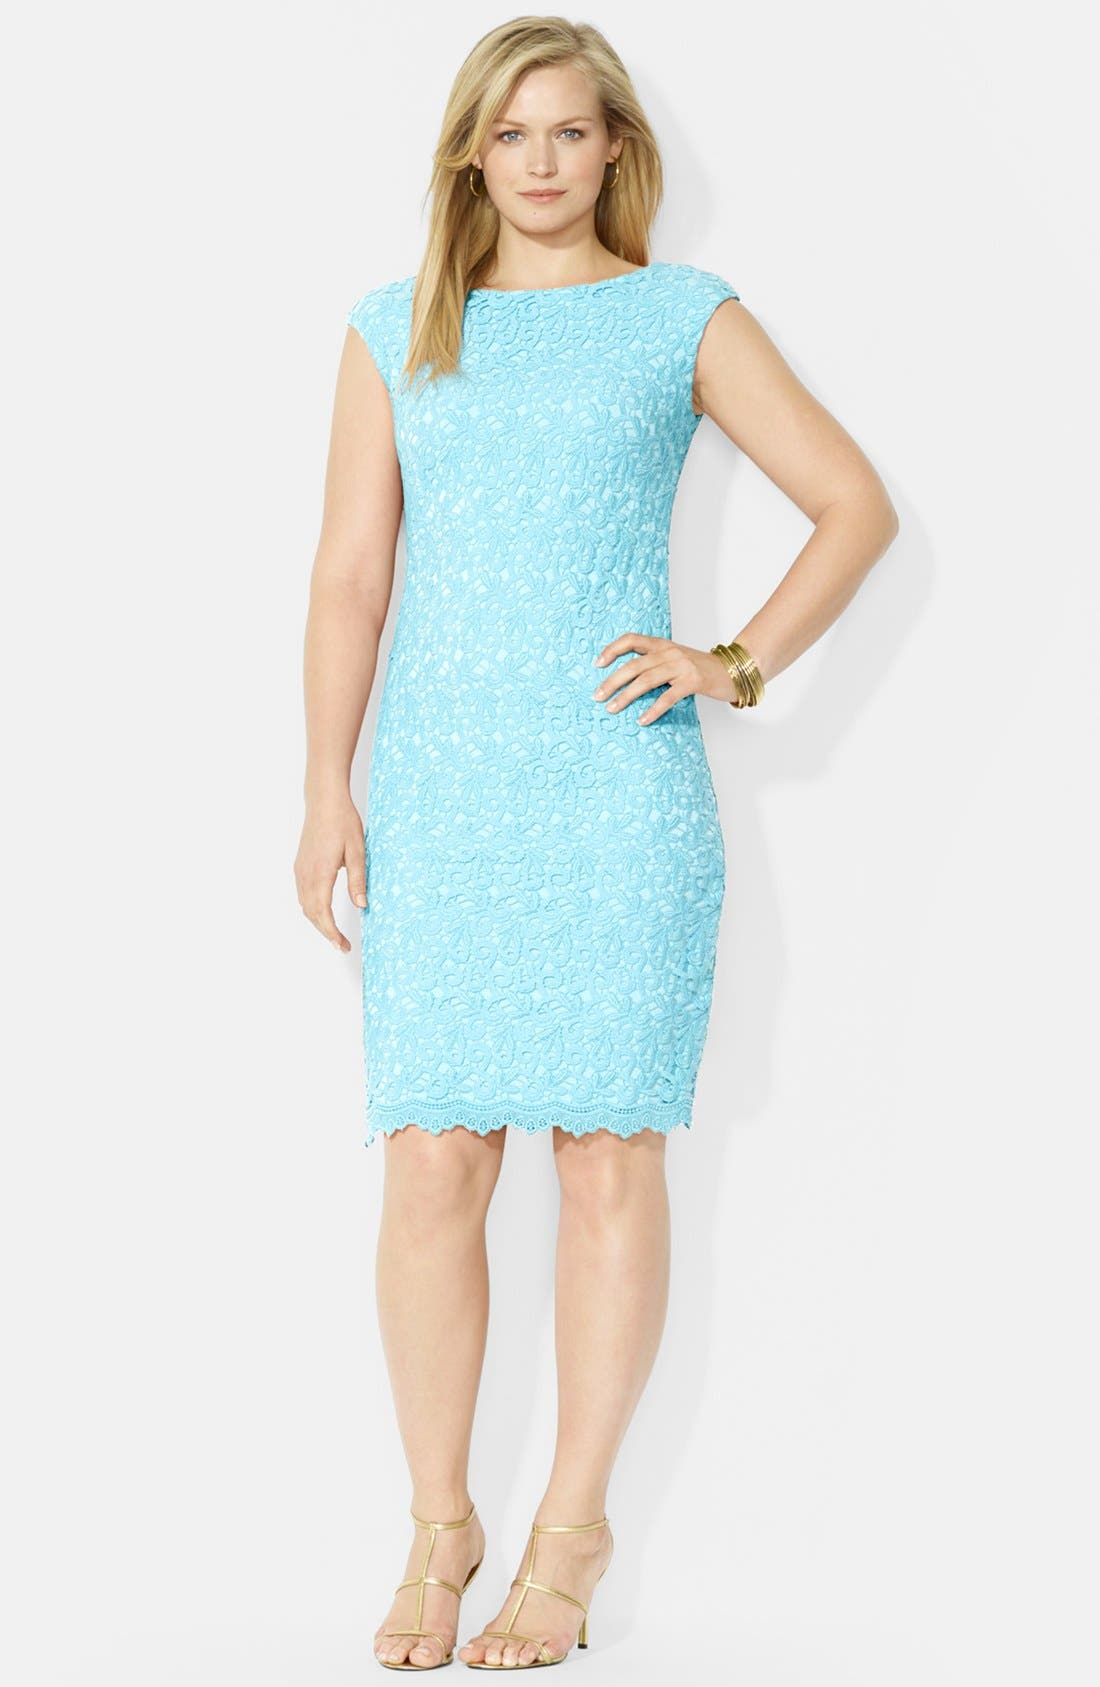 Alternate Image 1 Selected - Lauren Ralph Lauren Cotton Lace Sheath Dress (Plus Size)